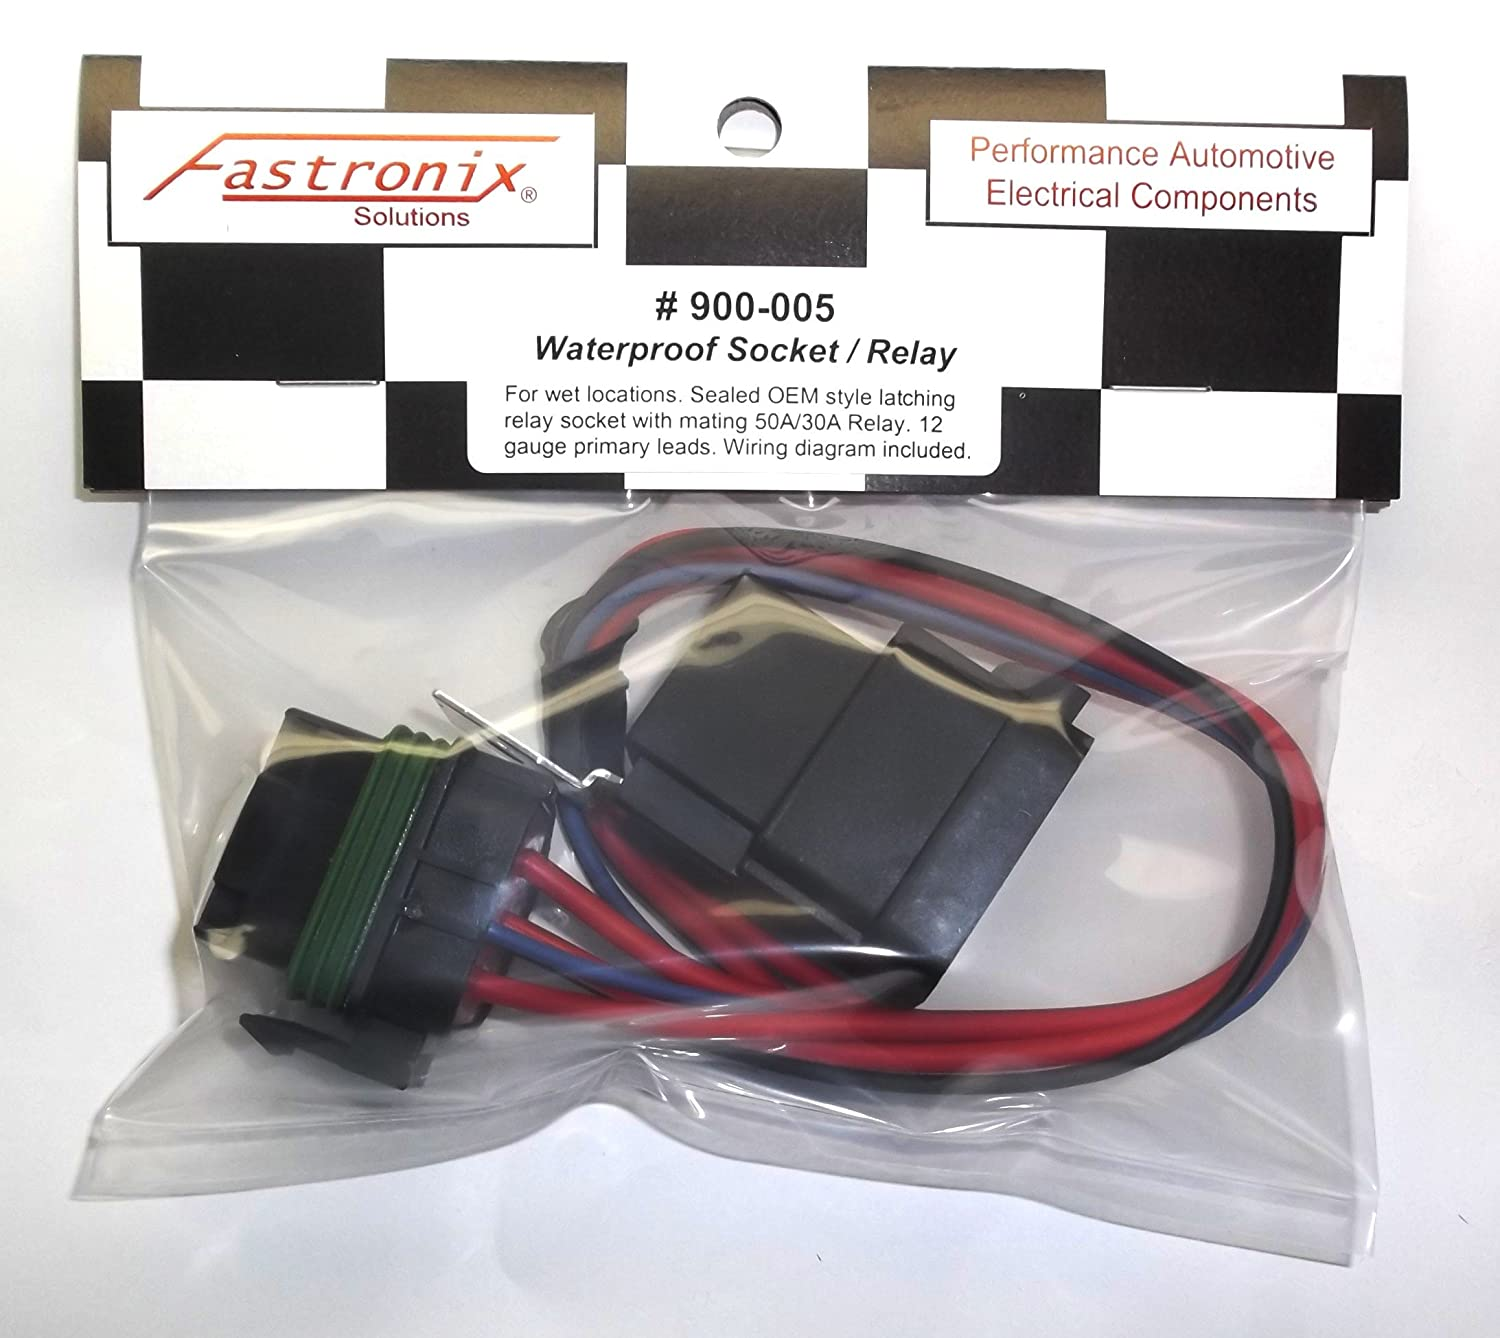 Fastronix 50 30 Amp Weatherproof Automotive Relay And Besides Latching Circuit Diagram On 8 Pin Wiring Socket Kit